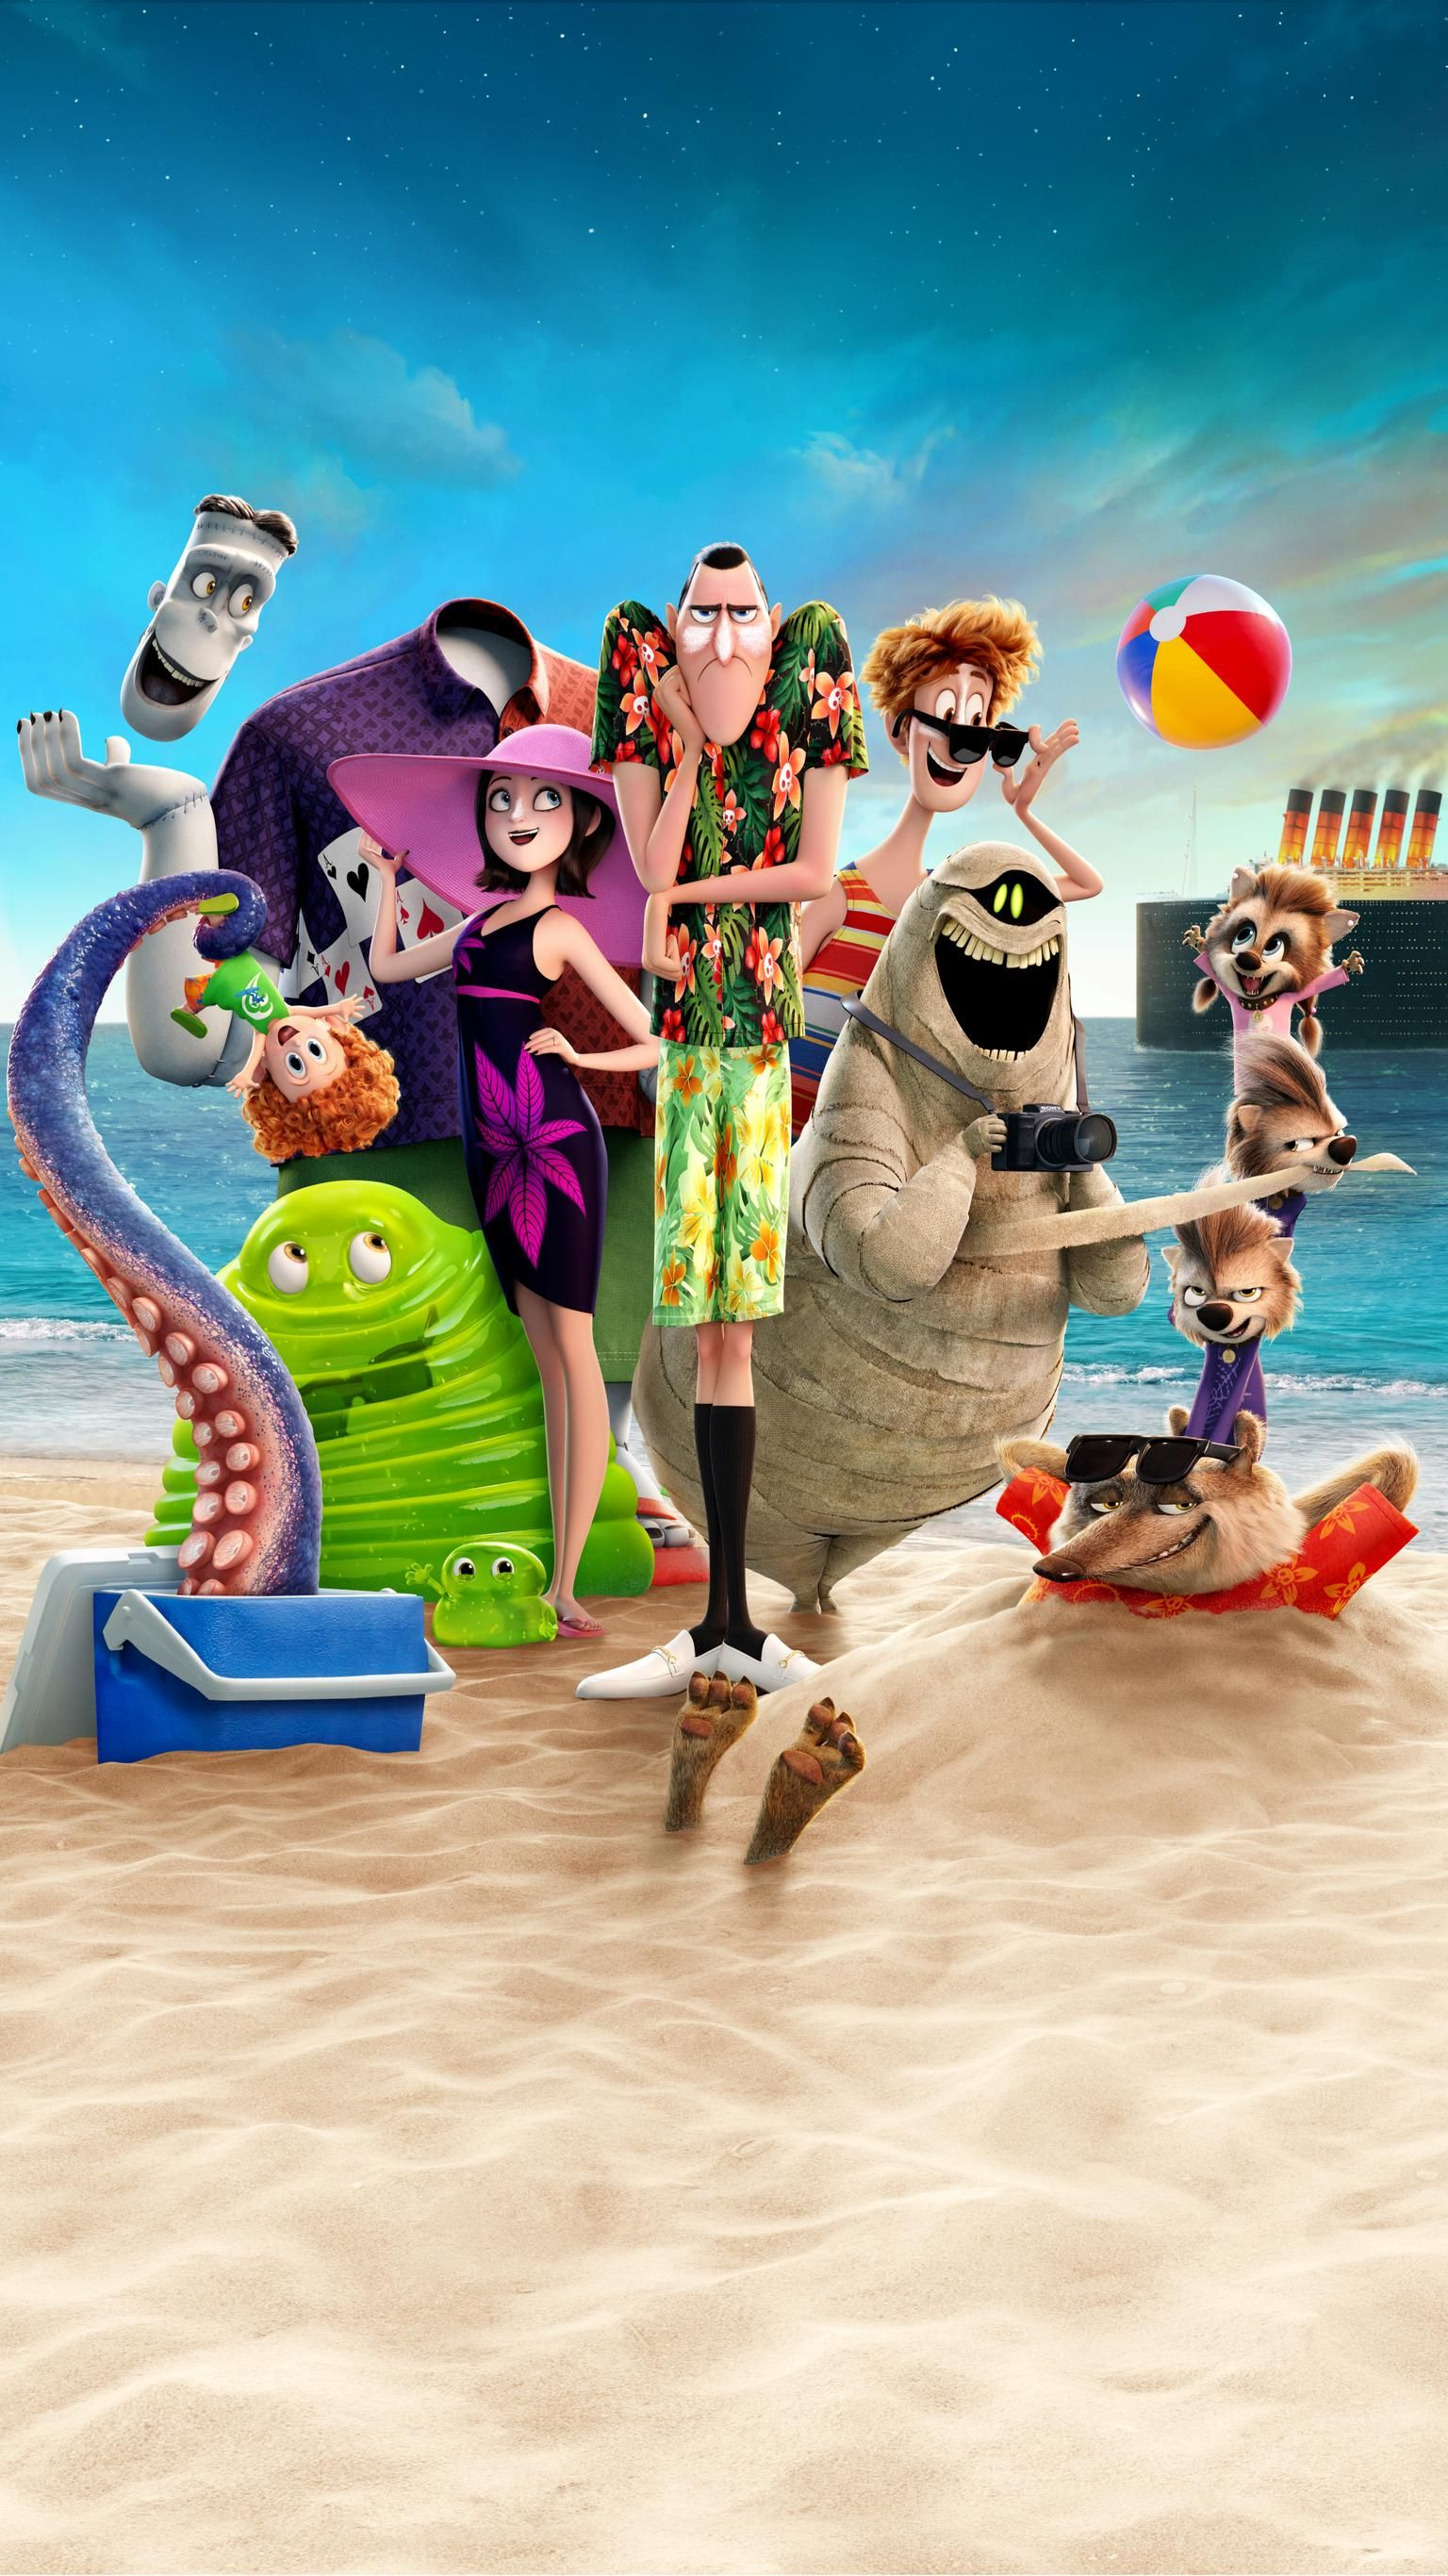 Hotel Transylvania 3 Summer Vacation (2018) Phone